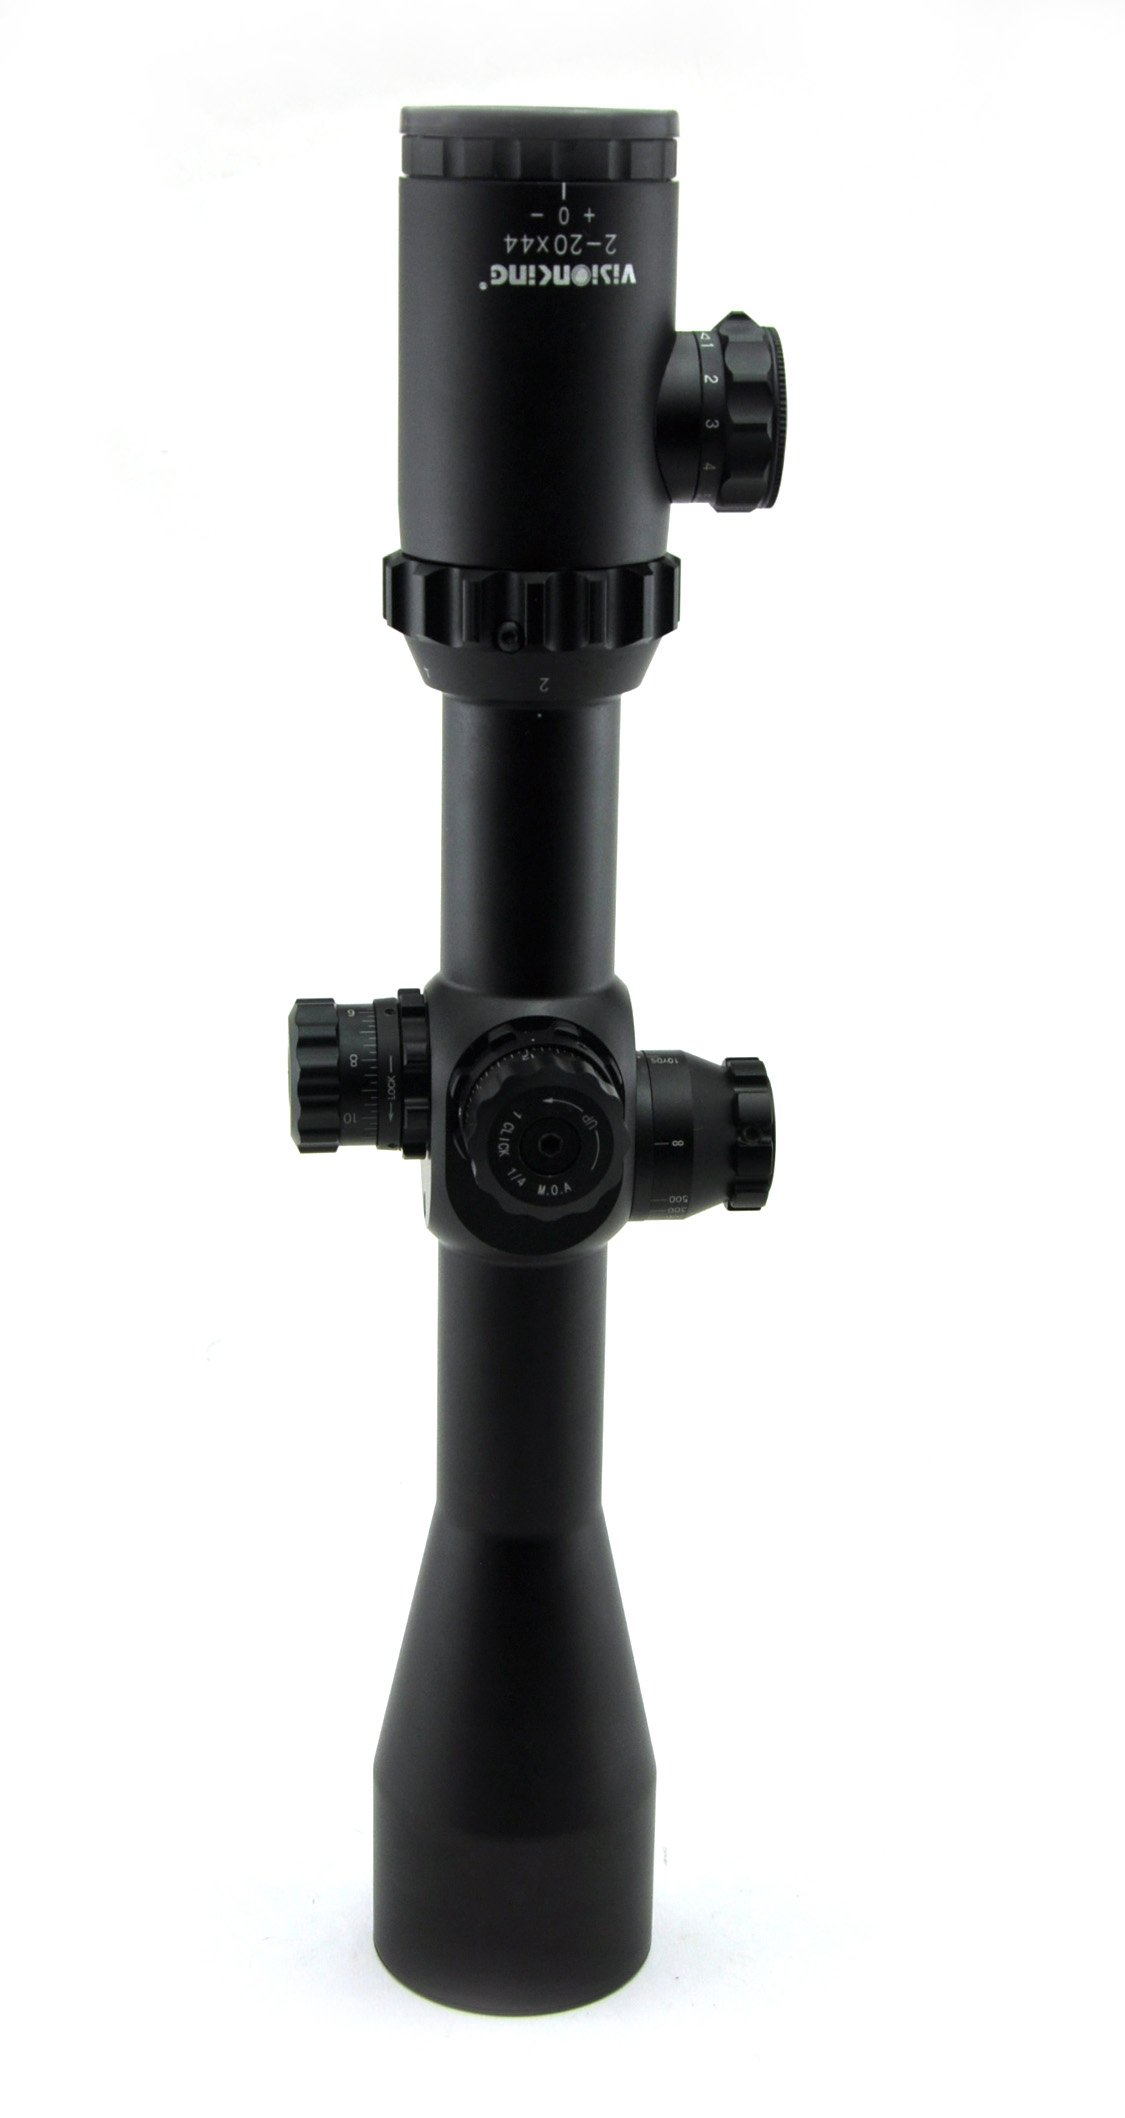 Visionking Rifle Scope 2-20x44 Riflescope 10 times zoom Side Focus Mil-dot Hunting Tactical Rifle scopes Color Black (same, High)